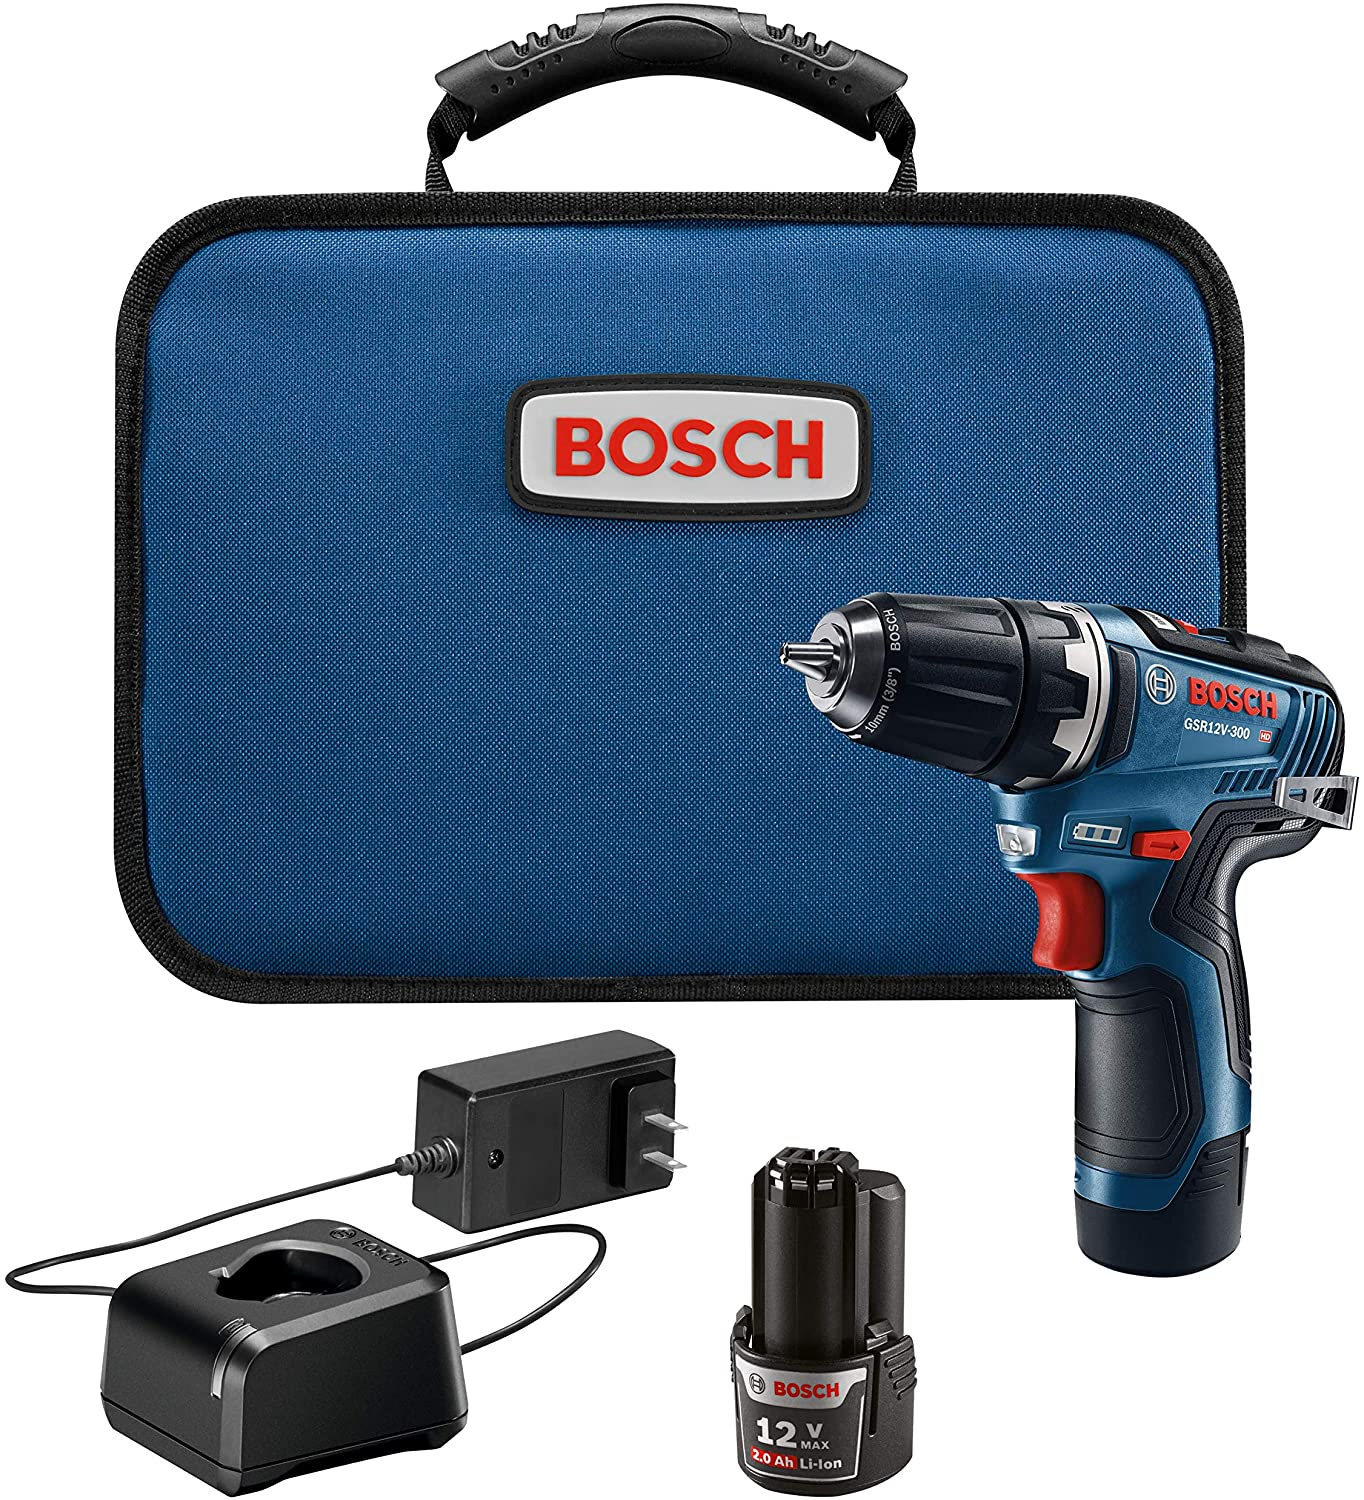 Bosch GSR12V-300B22 12V Max EC Brushless 3/8 In. Drill/Driver Kit